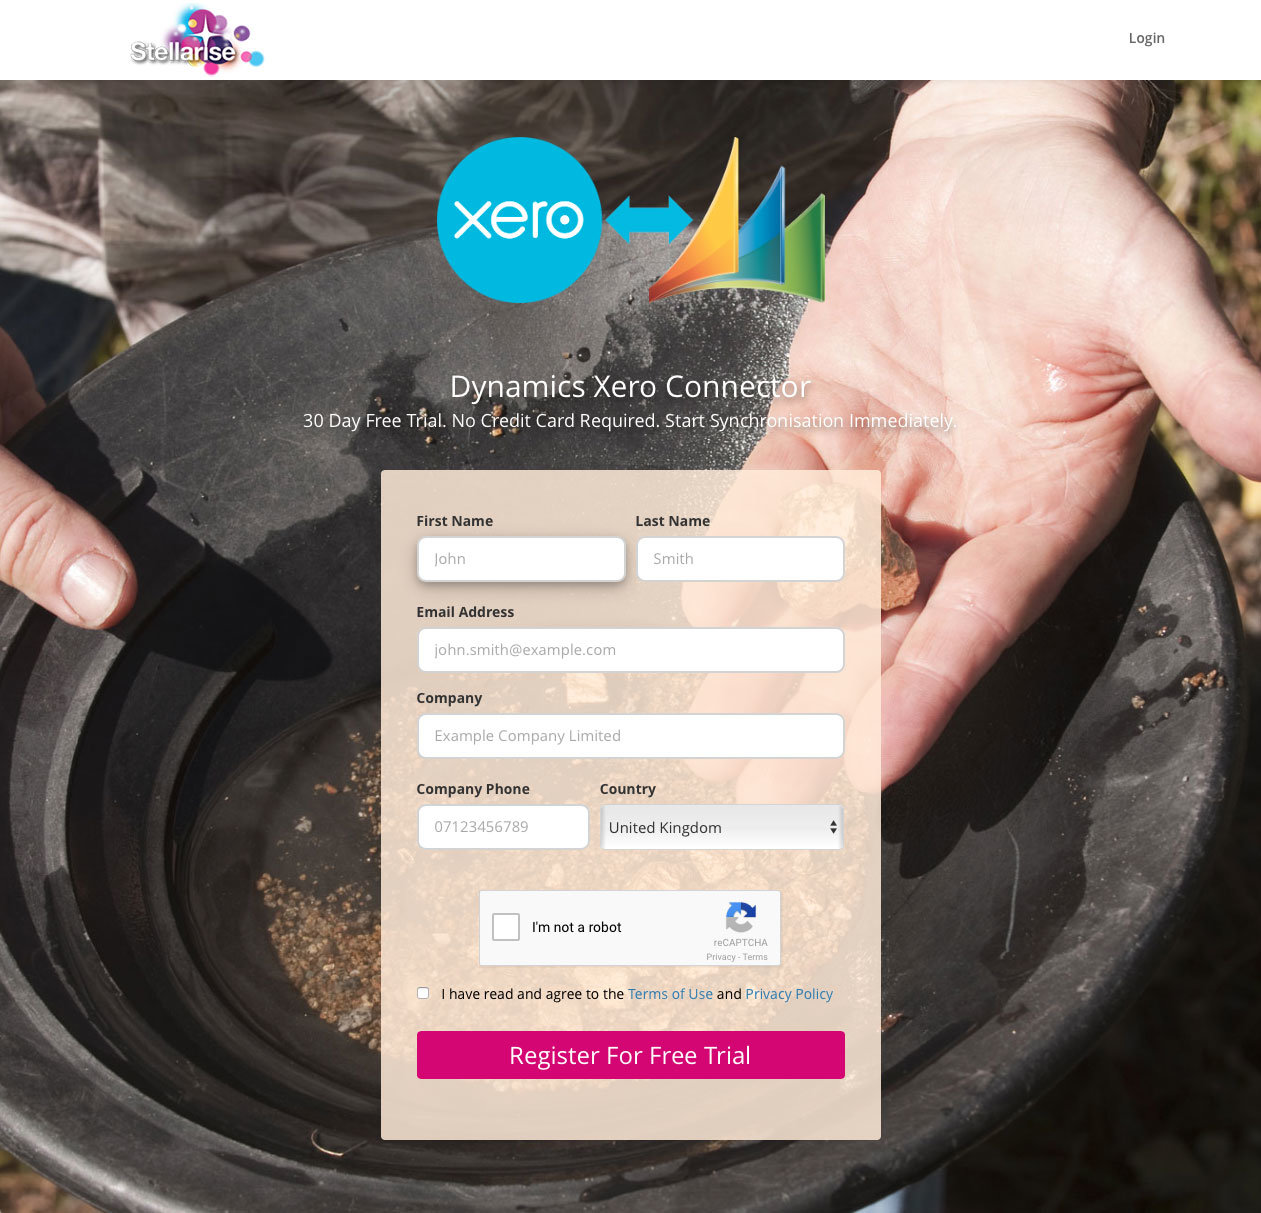 Registration for Dynamics Xero Connector